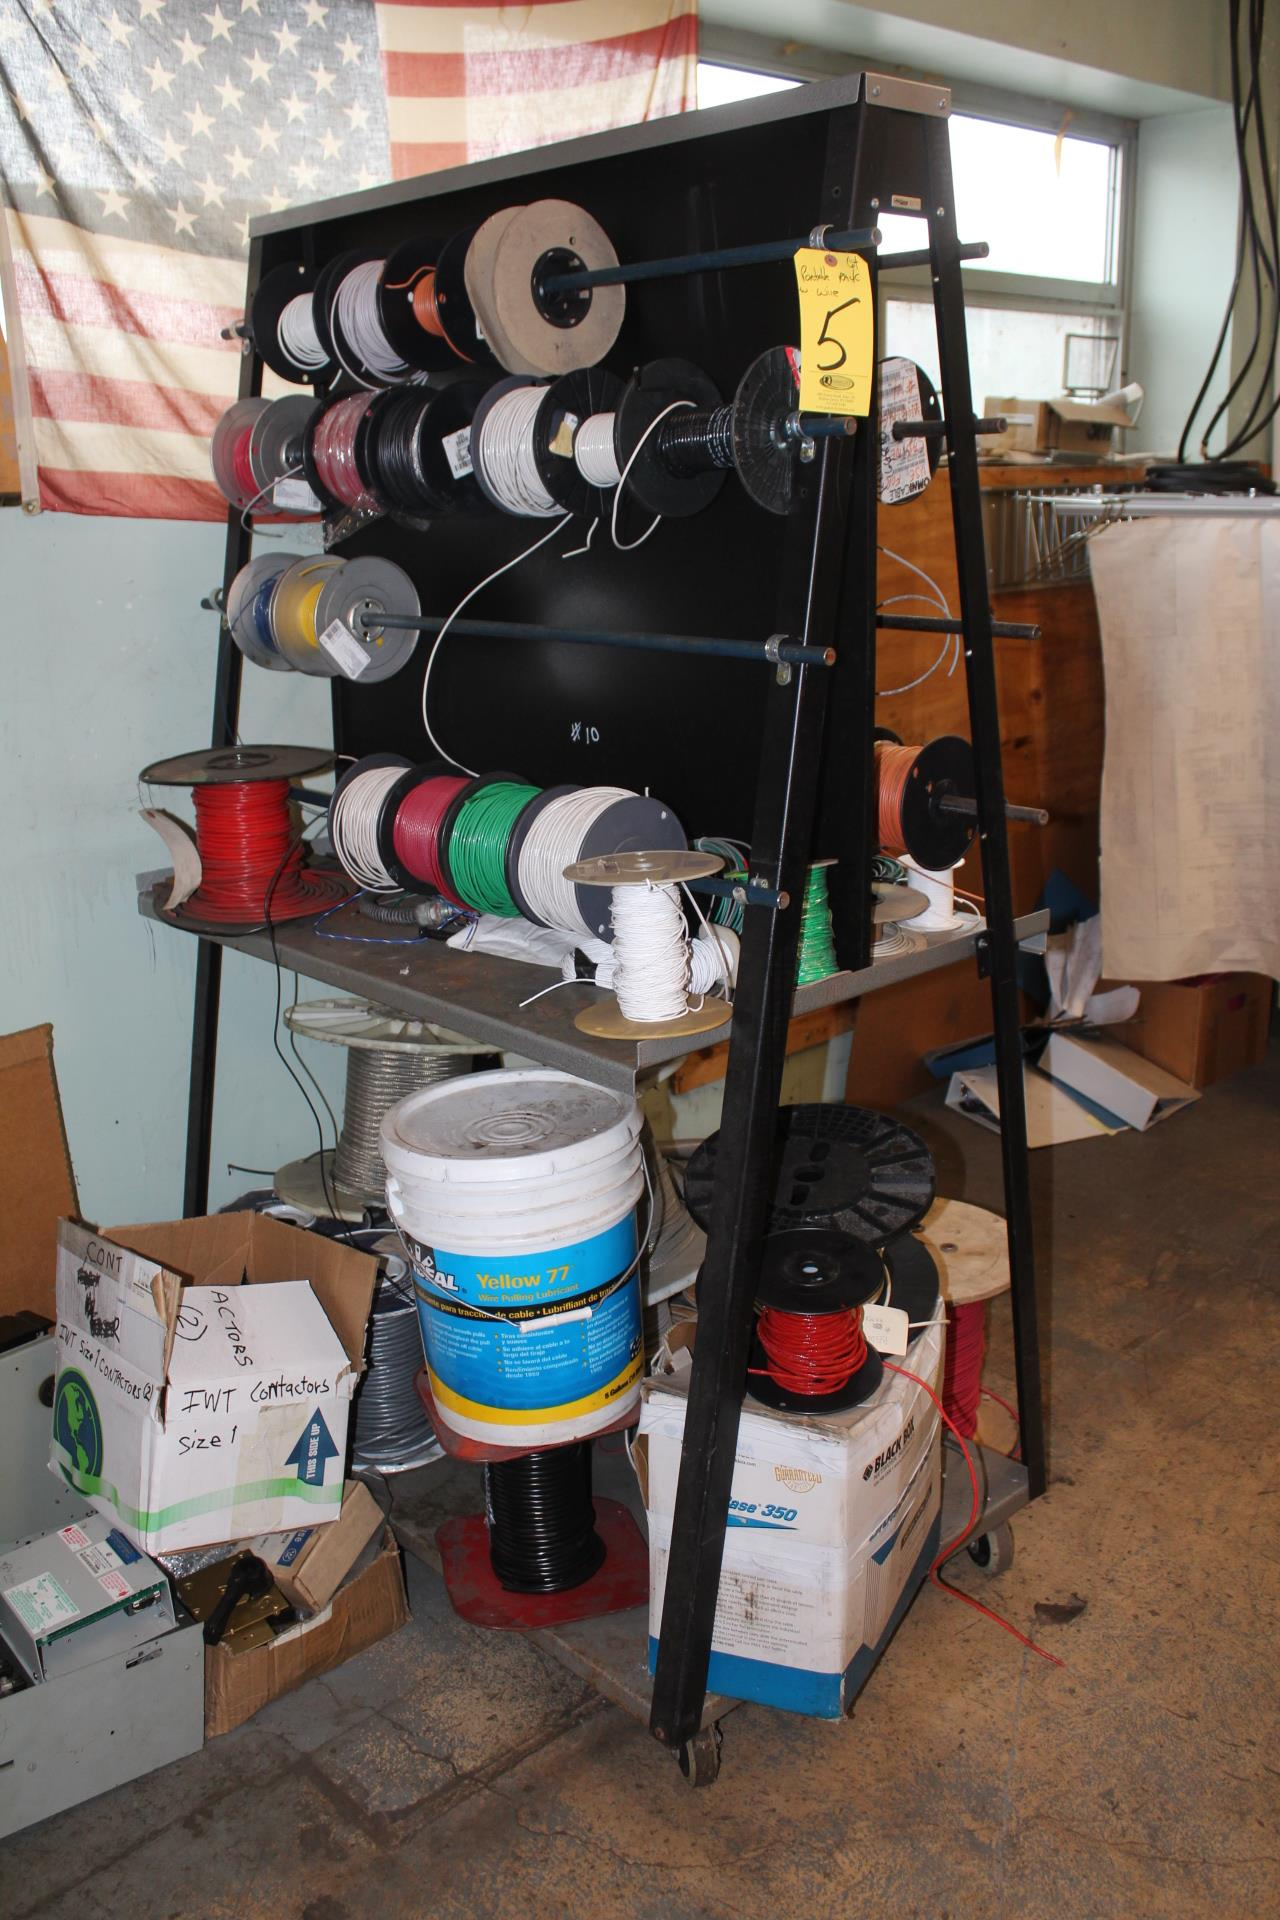 PORTABLE WIRE RACK AND CONTENTS